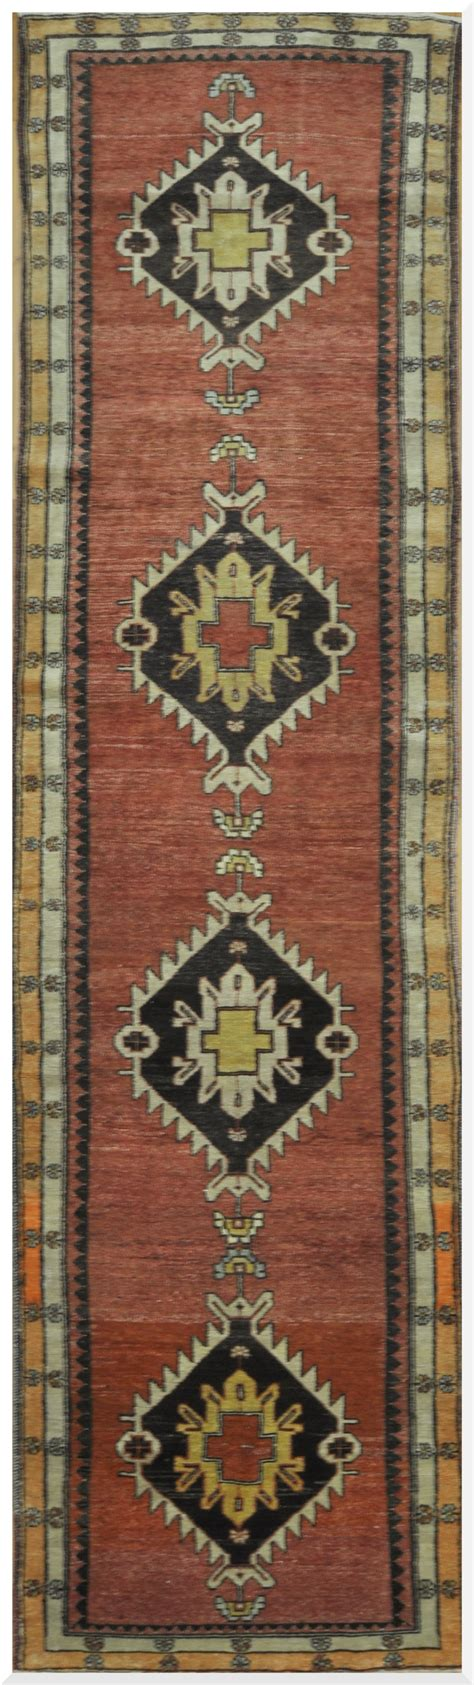 Handmade Rugs From Turkey - vintage handmade turkish runner rug surena rugs